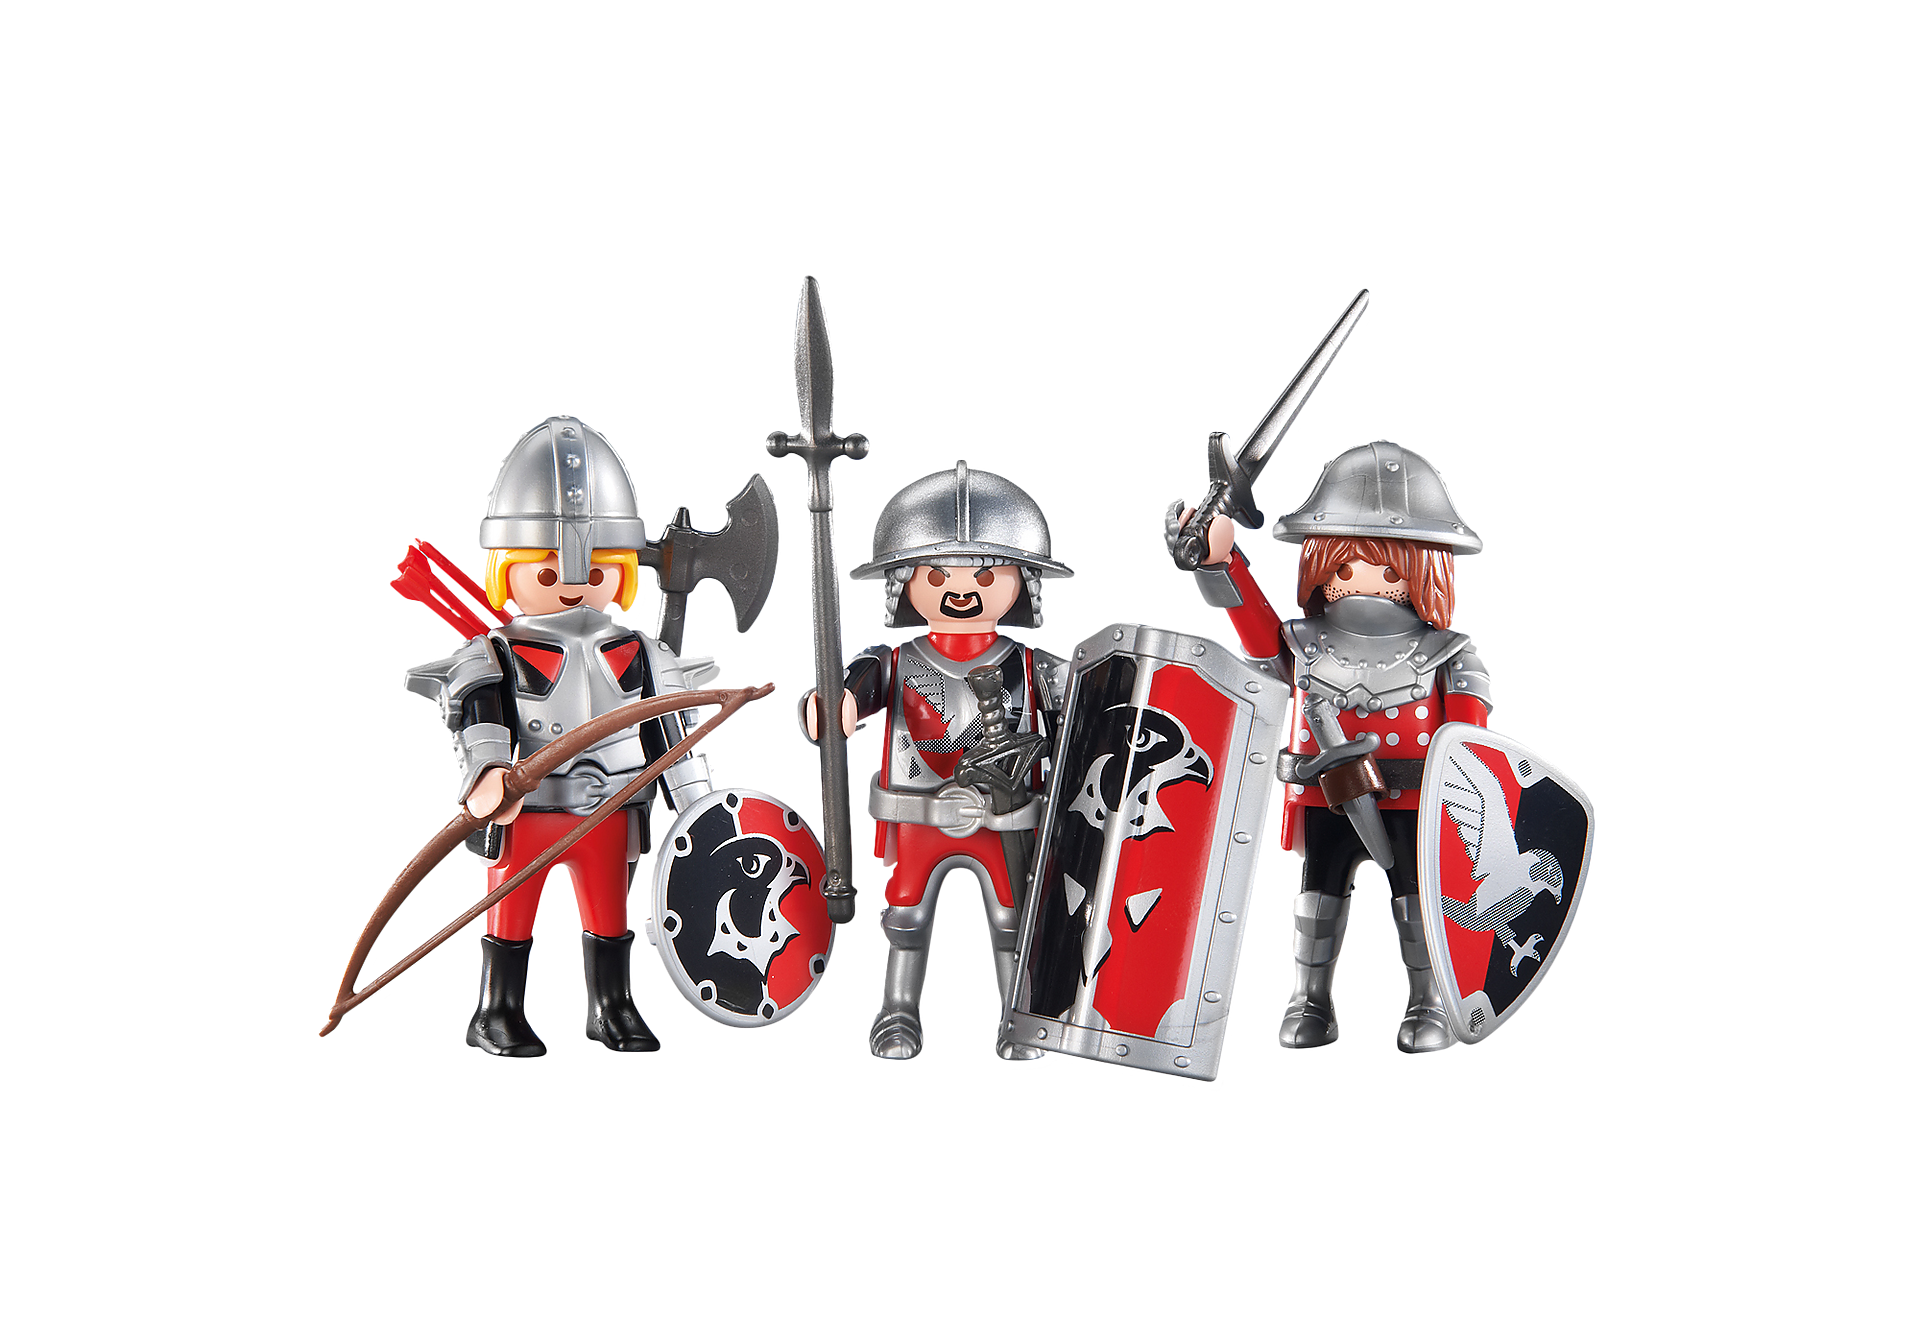 http://media.playmobil.com/i/playmobil/6381_product_detail/3 hawk knights